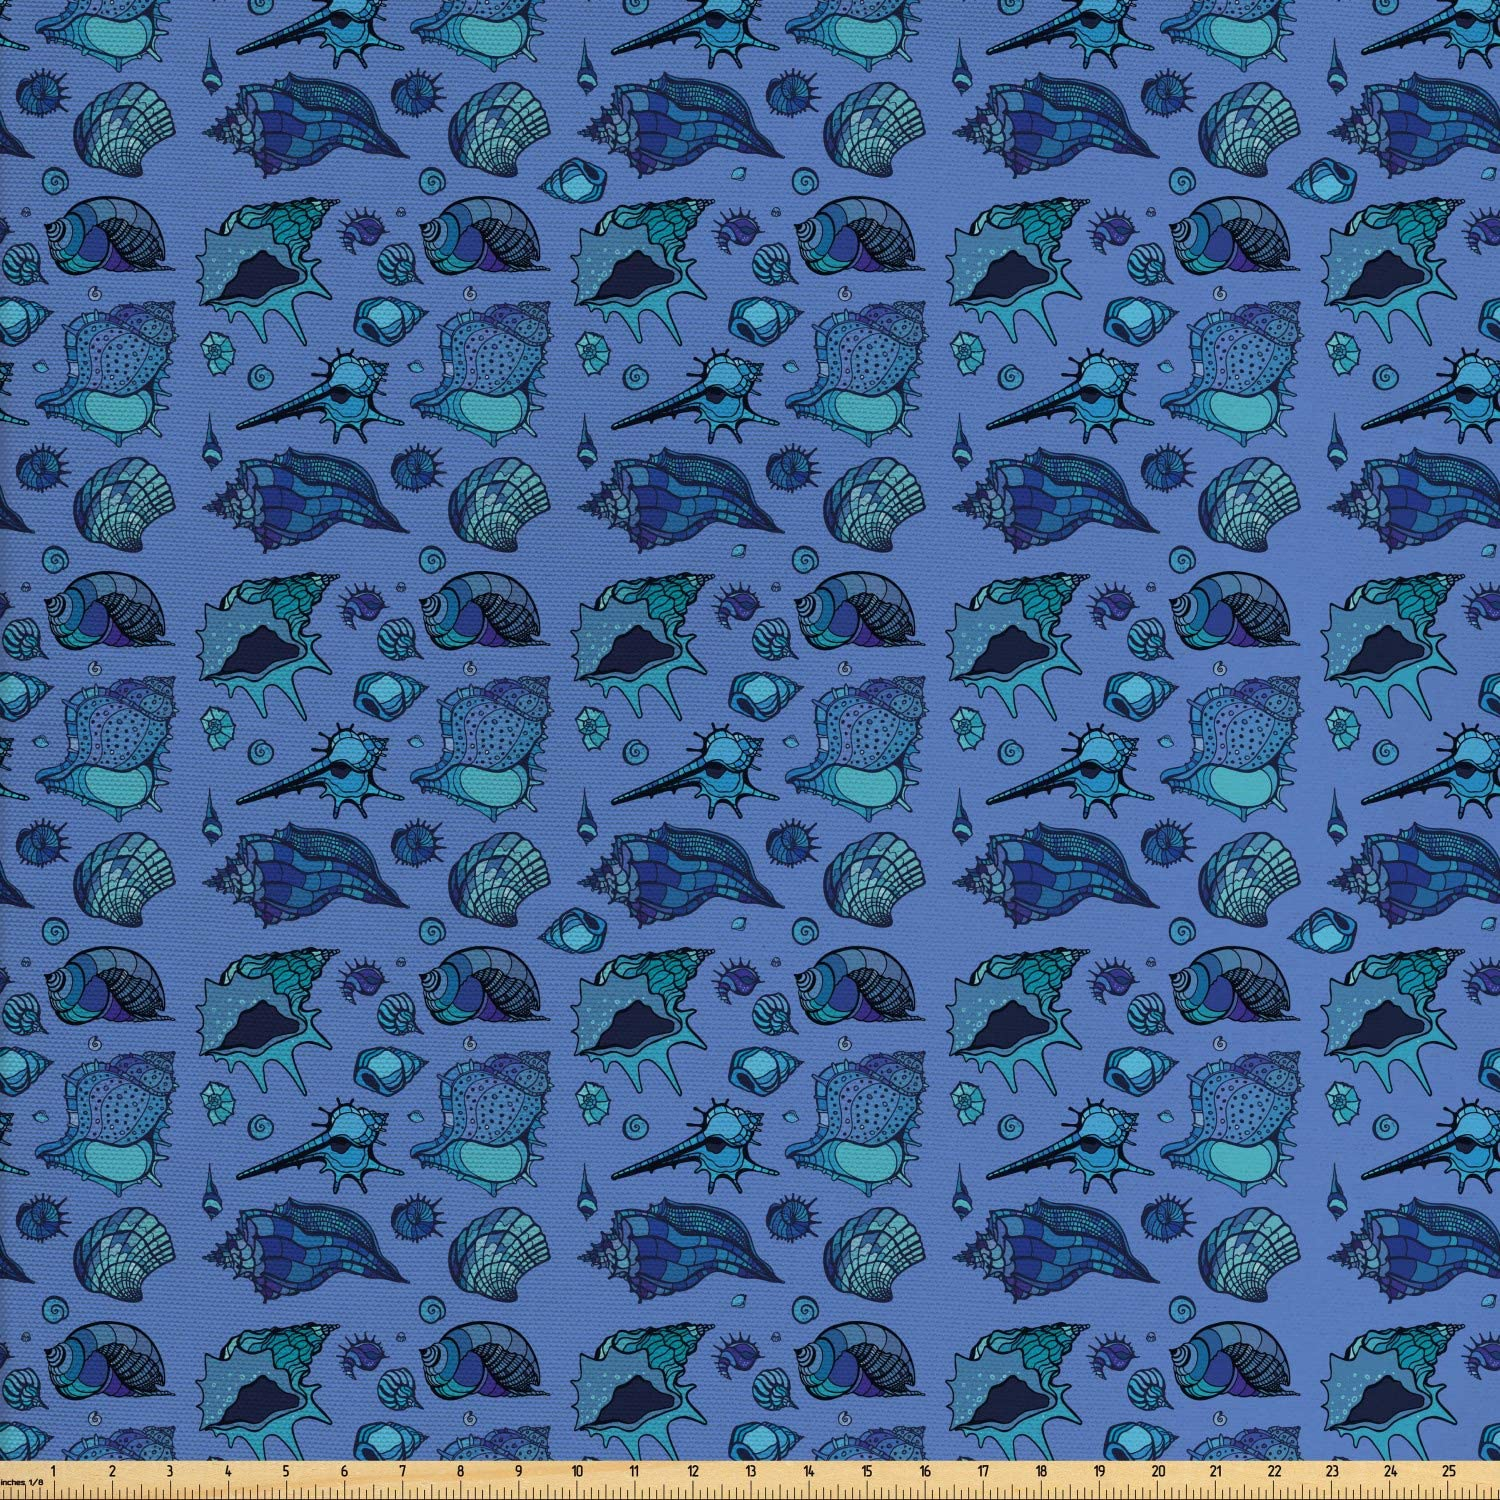 Ambesonne Nautical Fabric by The Yard, Assorted Seashells Swirling Ocean Items, Decorative Fabric for Upholstery and Home Accents, 1 Yard, Aqua Dark Lavender